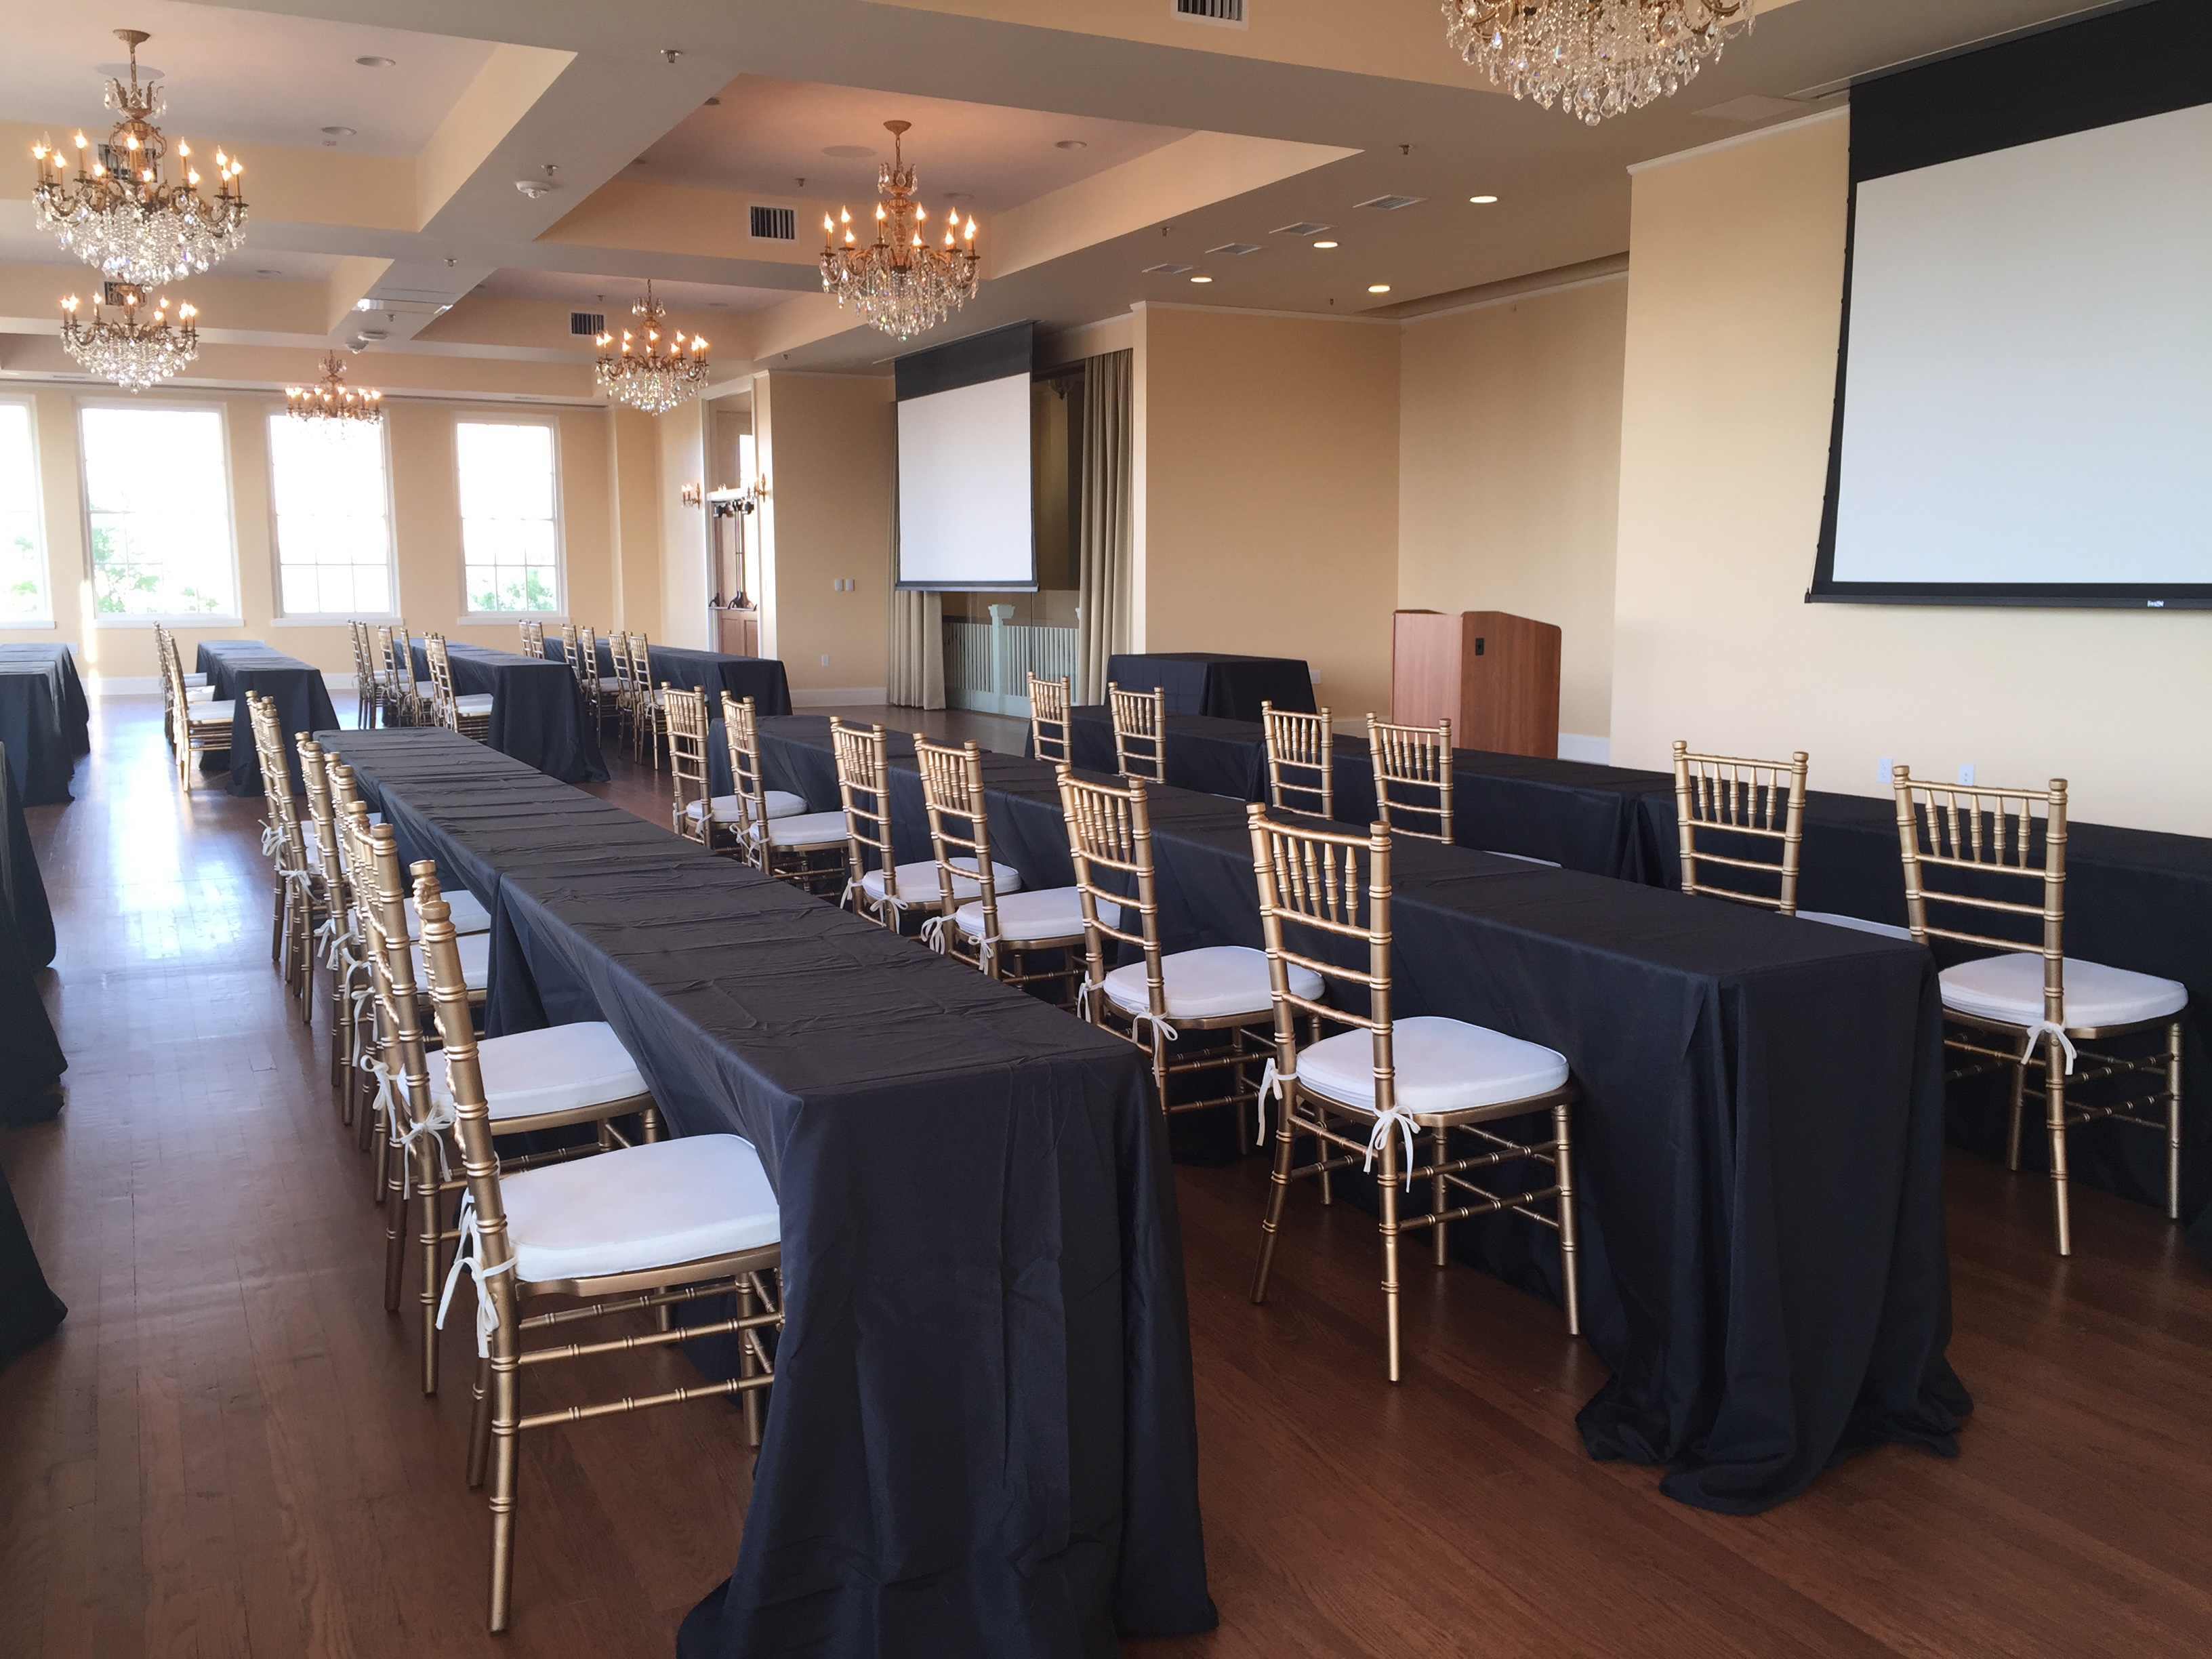 Long classroom tables with black linens face a projection screen at the front of the room.